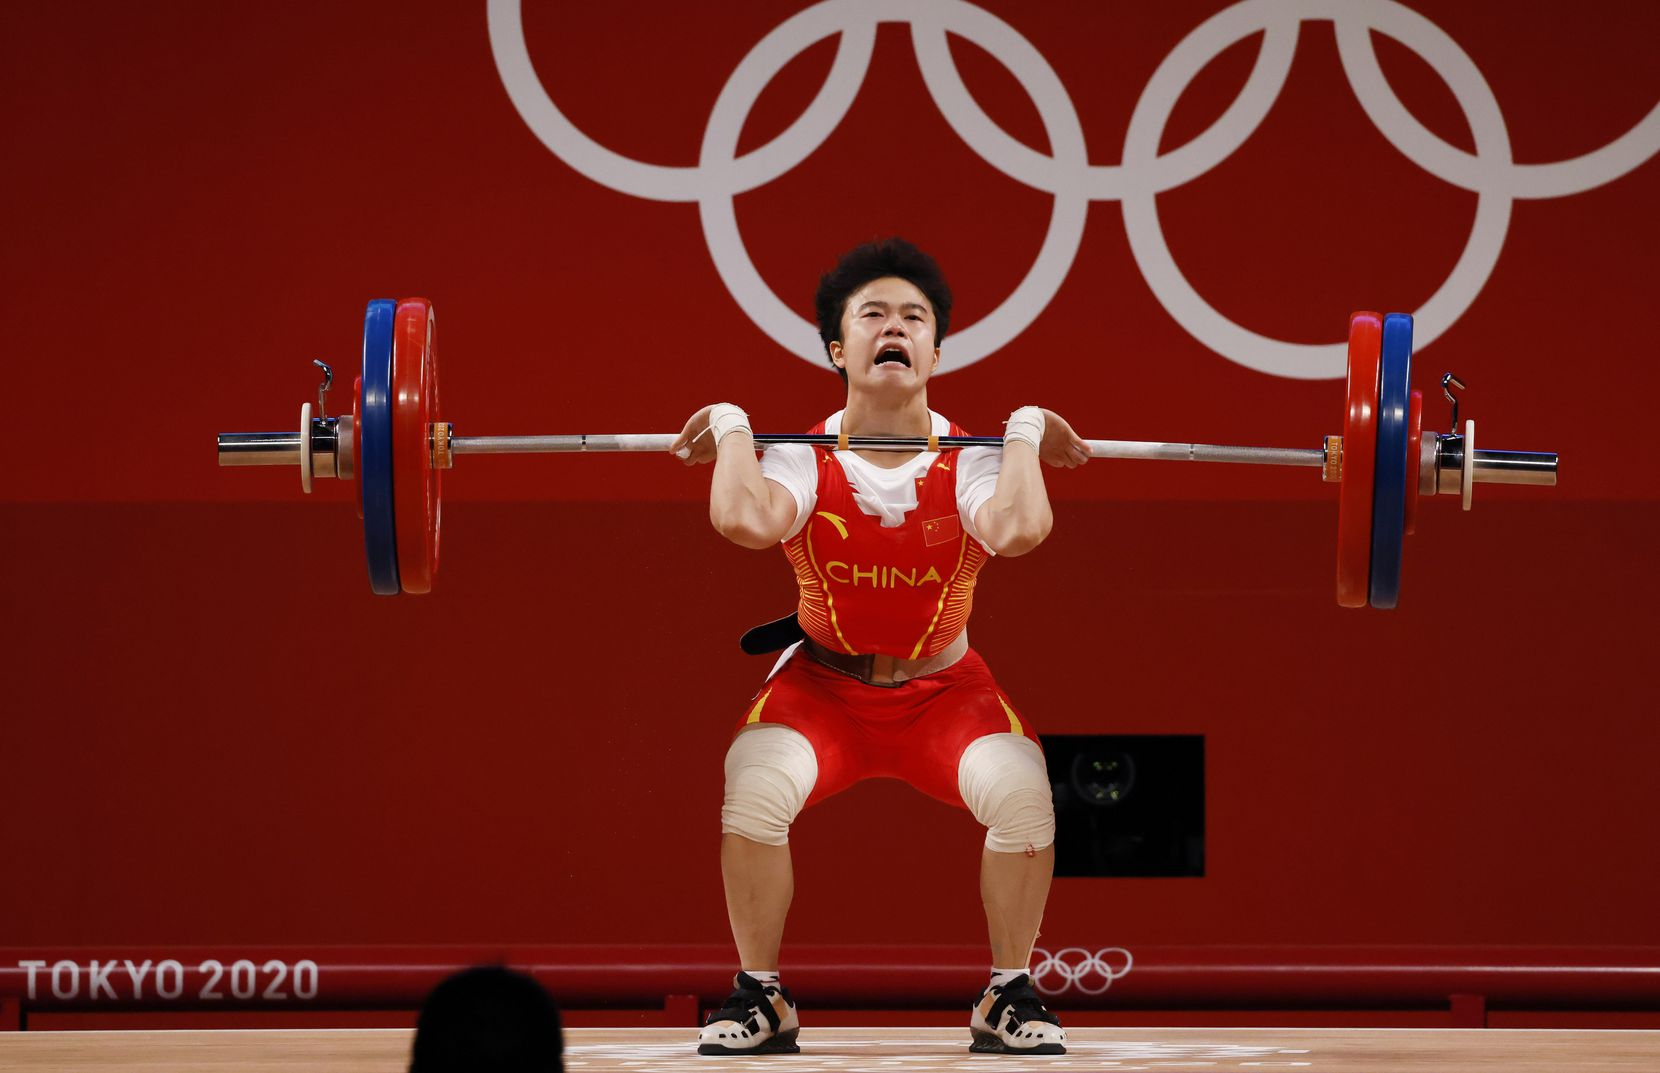 China's Zhihui Hou lifts 116 kg an Olympic record on her third attempt in the clean and jerk round of the women's 49 kg weightlifting final during the postponed 2020 Tokyo Olympics at Tokyo International Forum on Saturday, July 24, 2021, in Tokyo, Japan. Hou won a gold medal in this event. (Vernon Bryant/The Dallas Morning News)